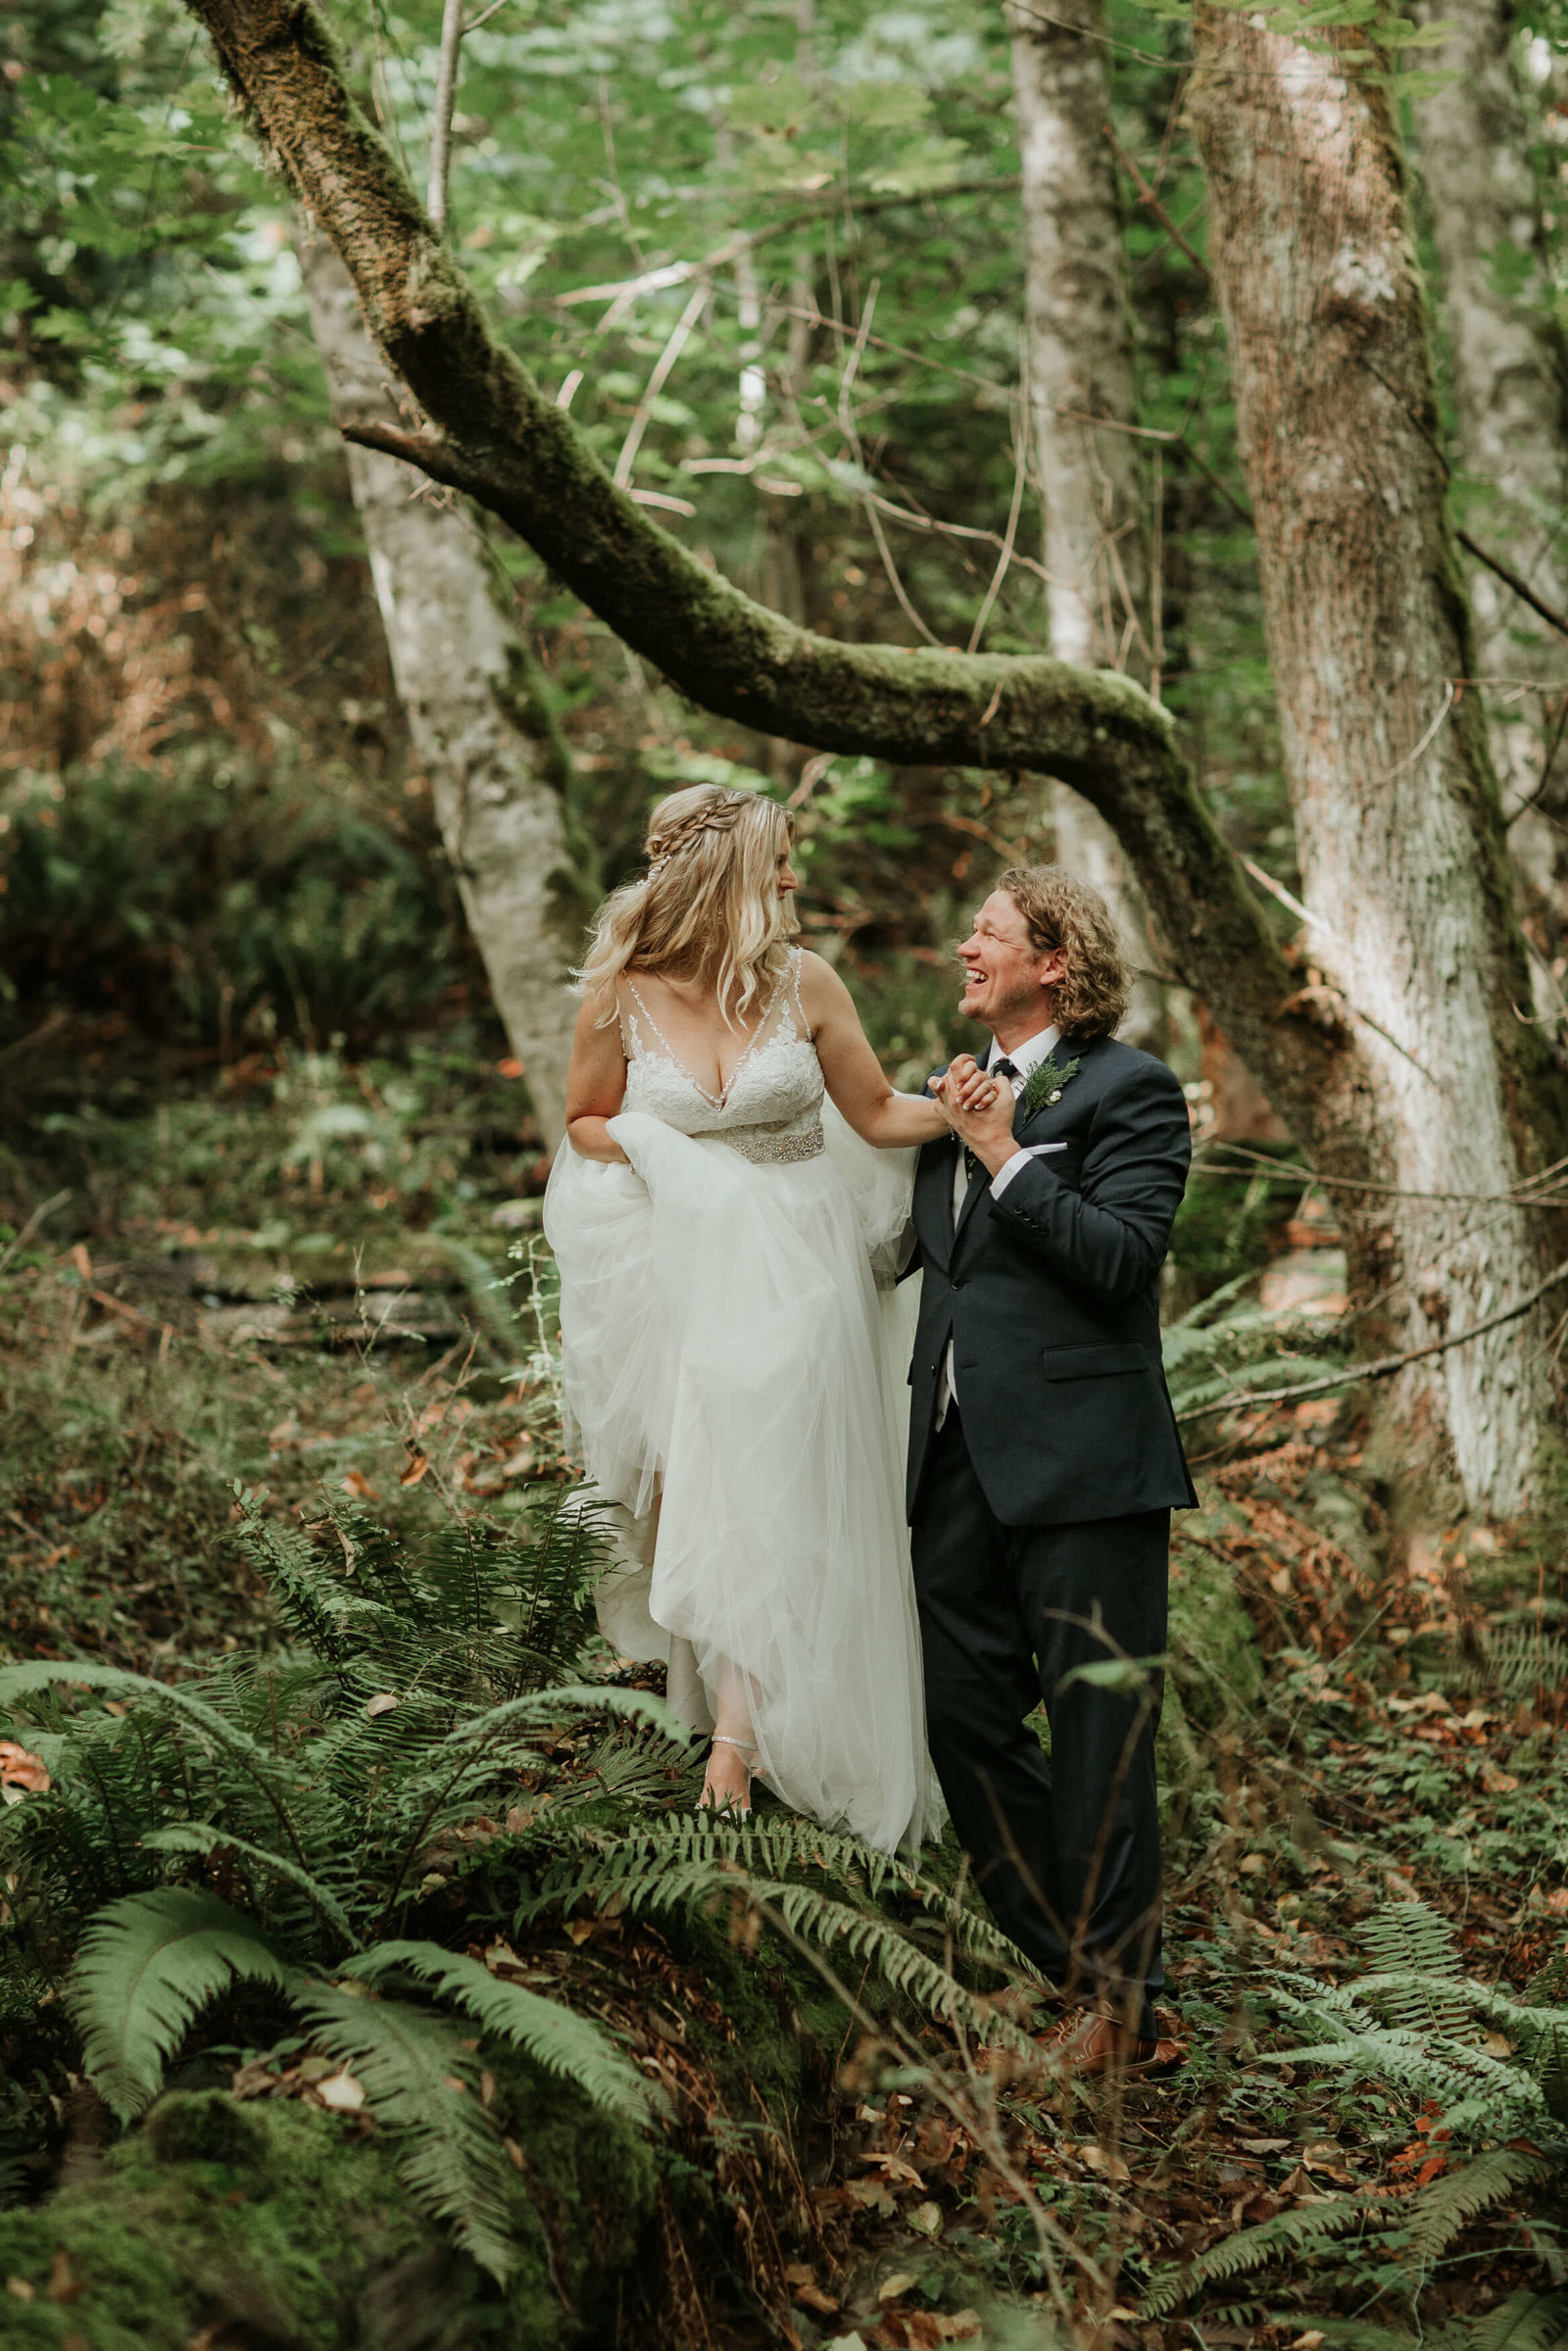 Orcas-island-wedding-katherine&robin-adina-preston-weddings-9-22-2018-APW-H873